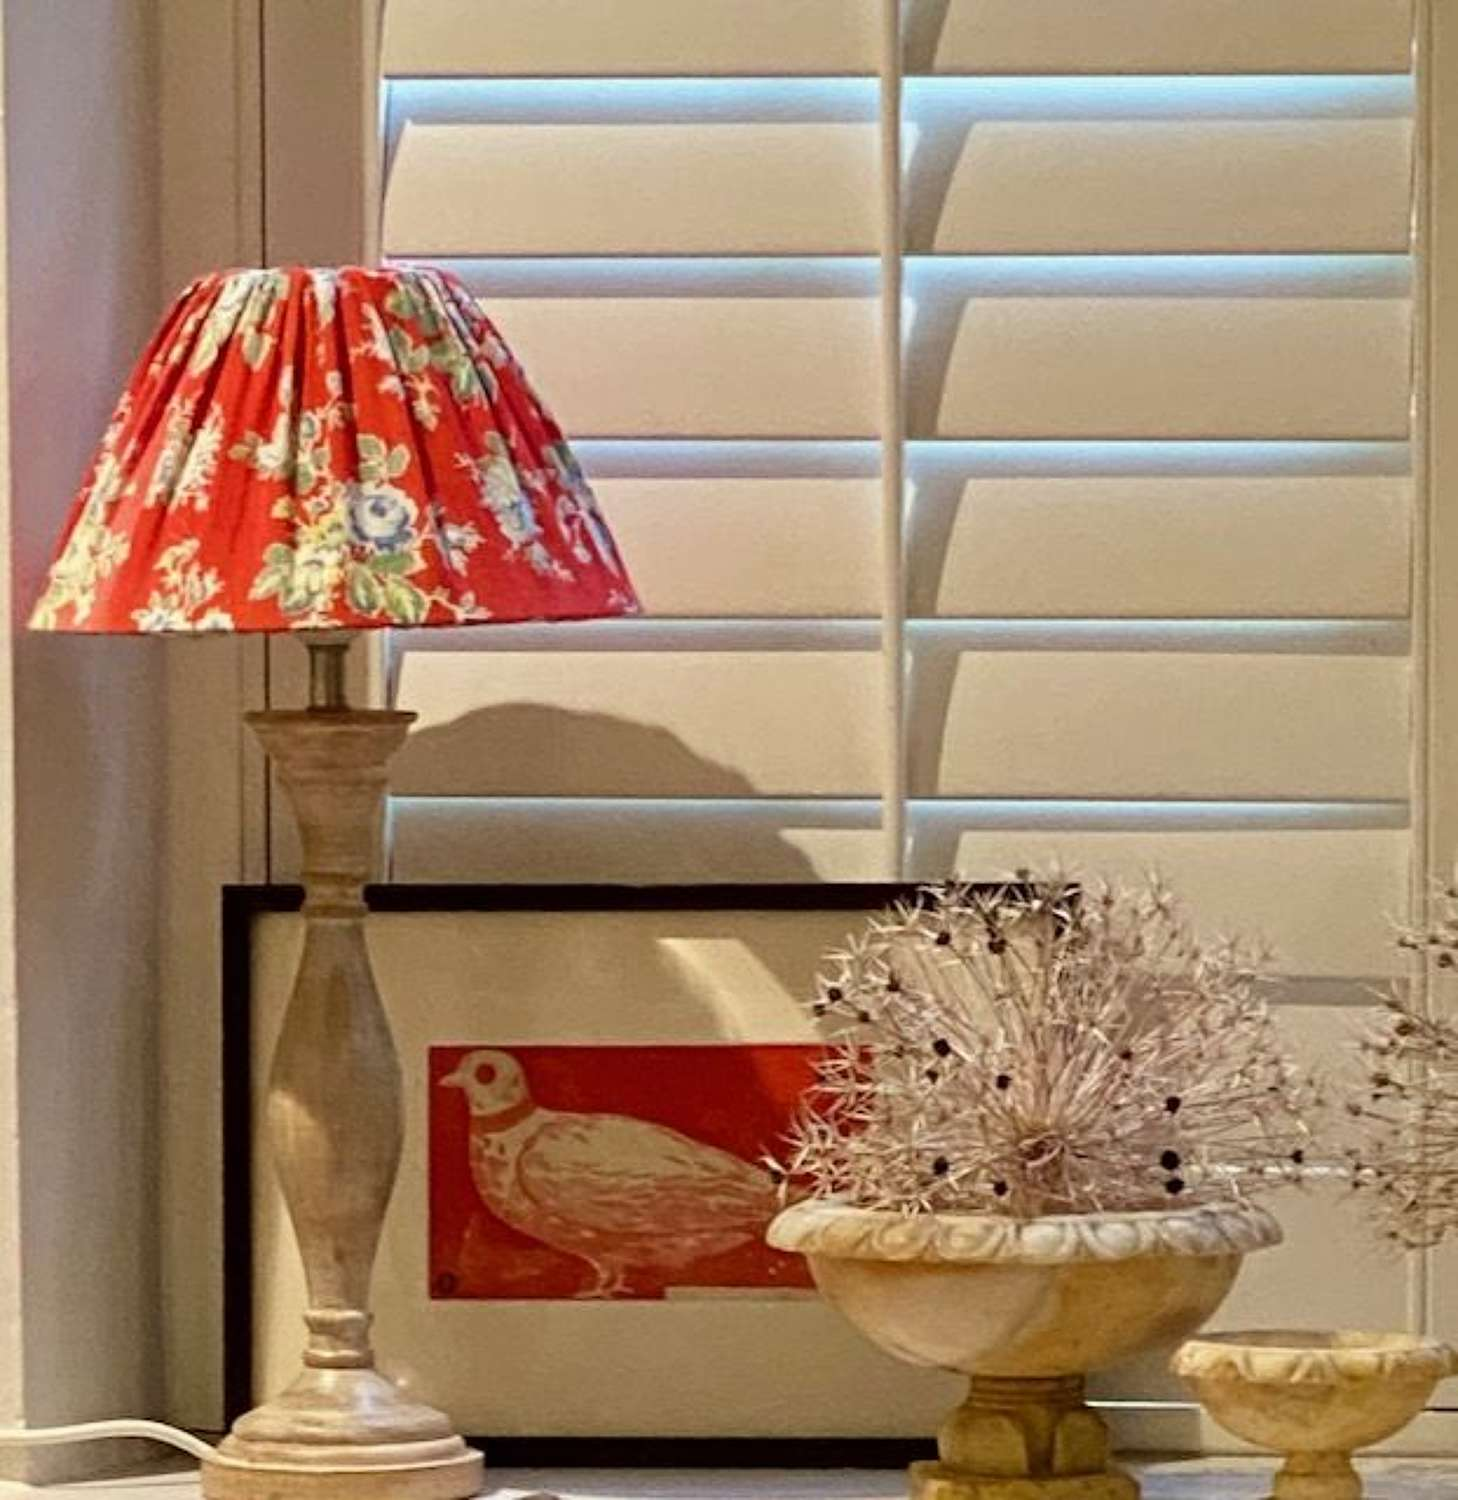 Two Lamps with vintage French floral cotton lampshades